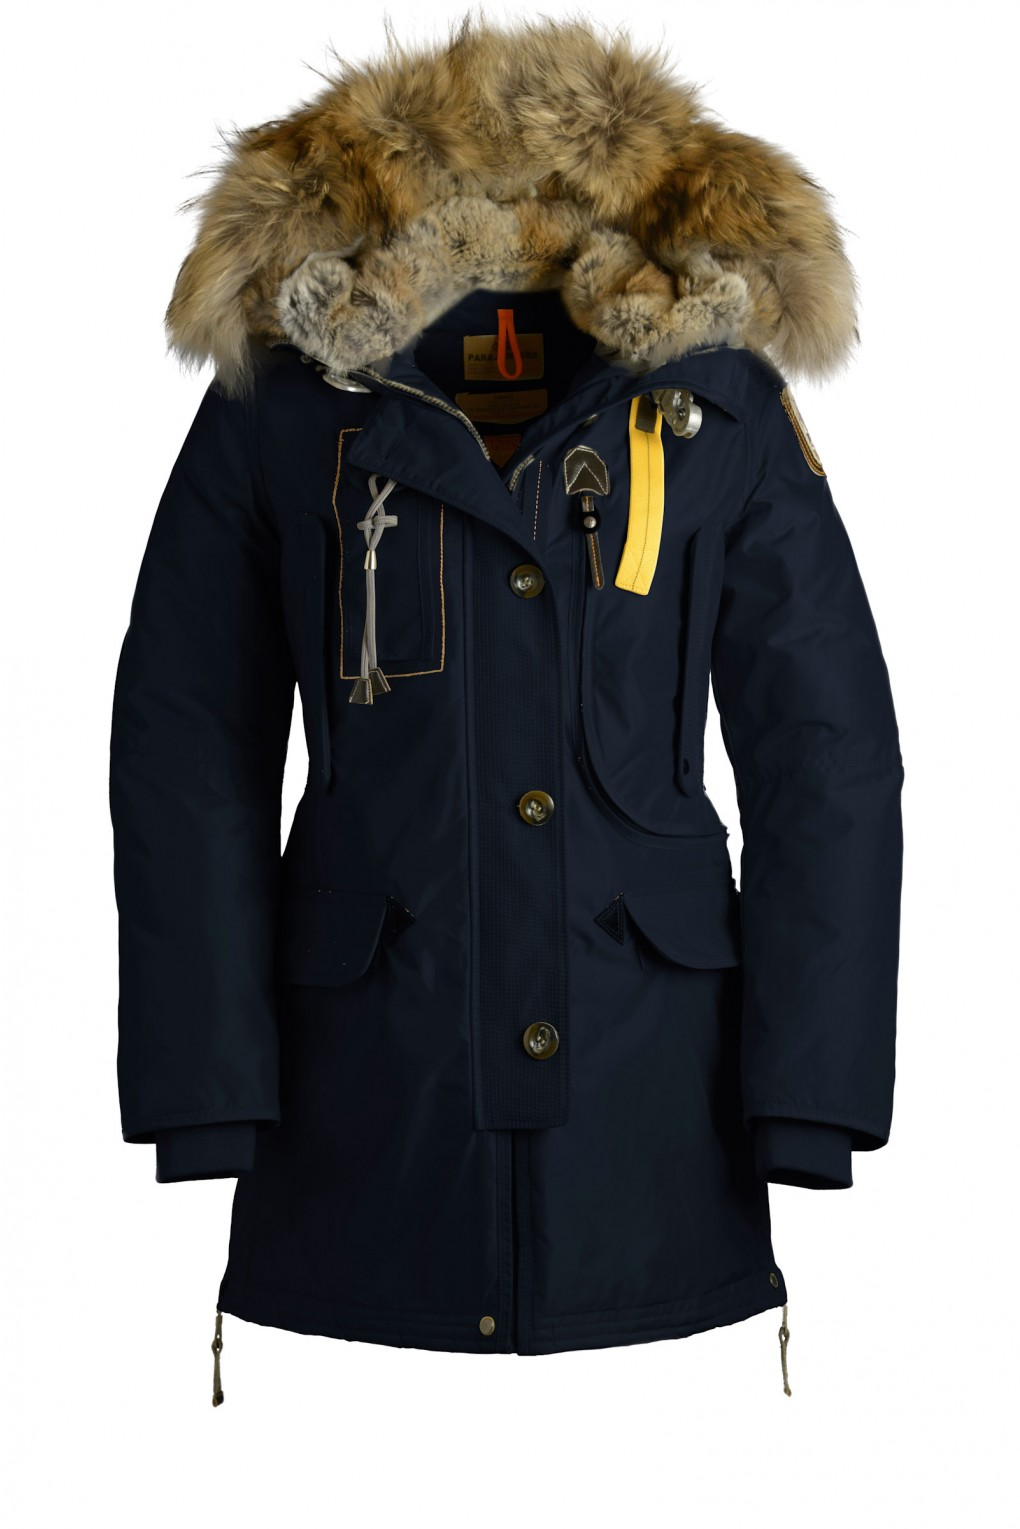 parajumpers KODIAK woman outerwear Navy